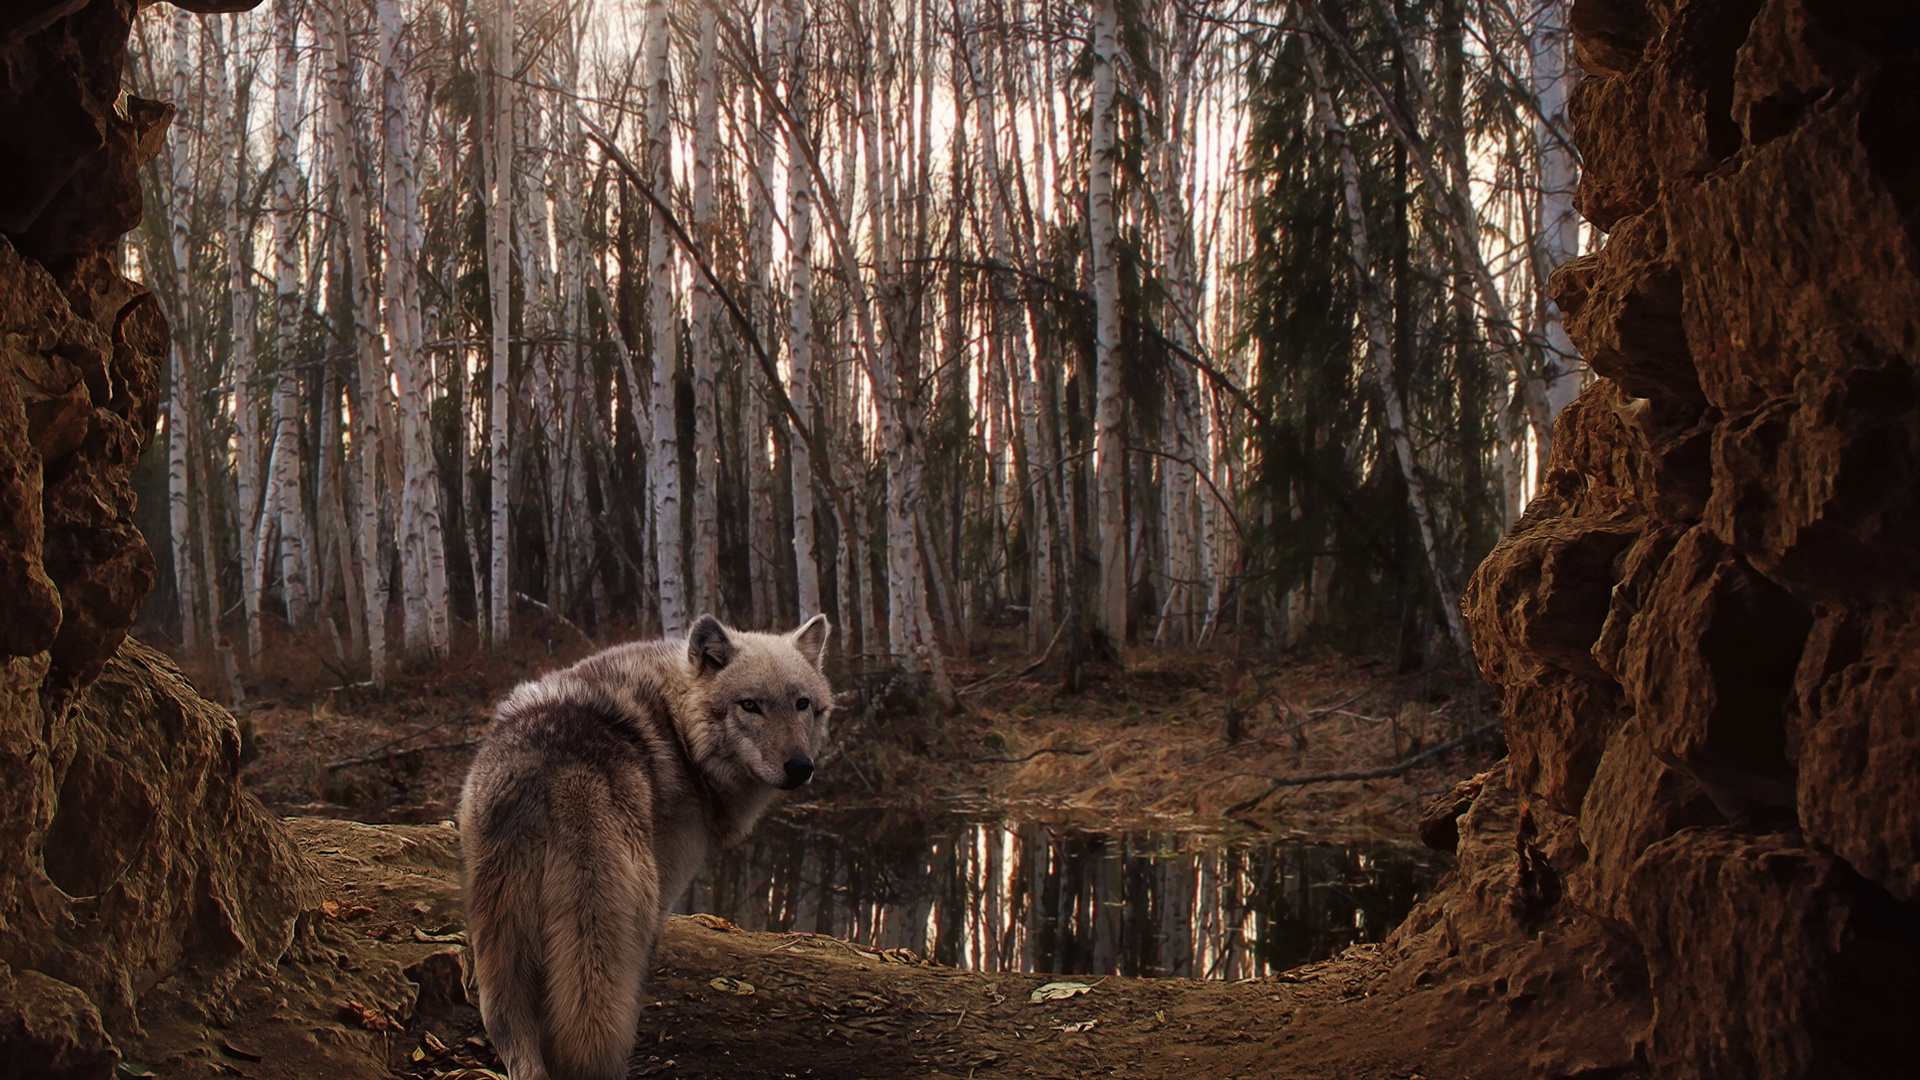 28433 download wallpaper Animals, Wolfs screensavers and pictures for free